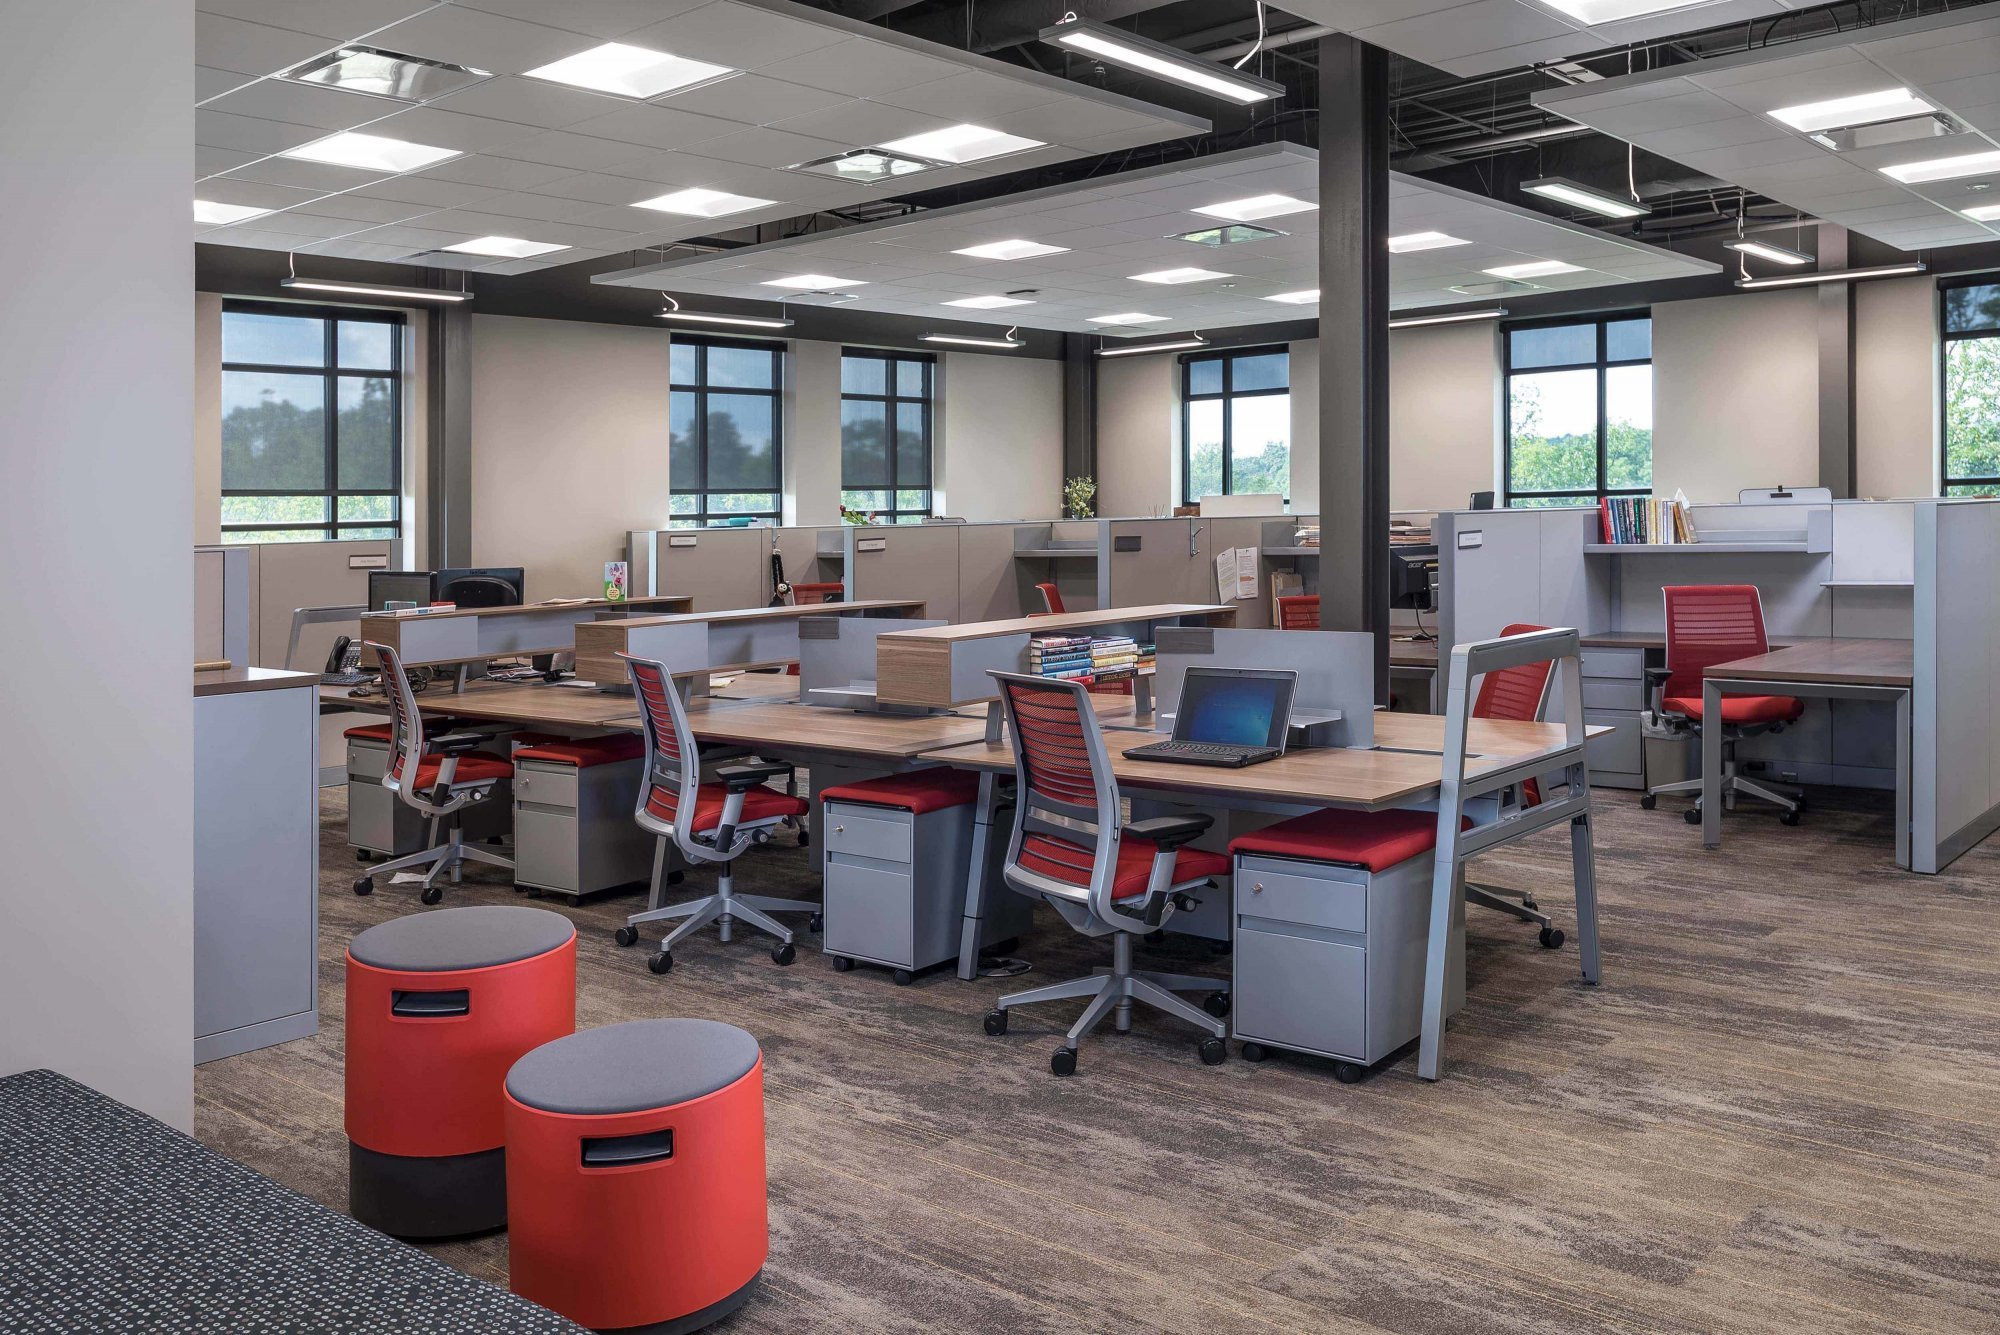 donan-engineering-new-headquarters-office-building-interior-cubicals